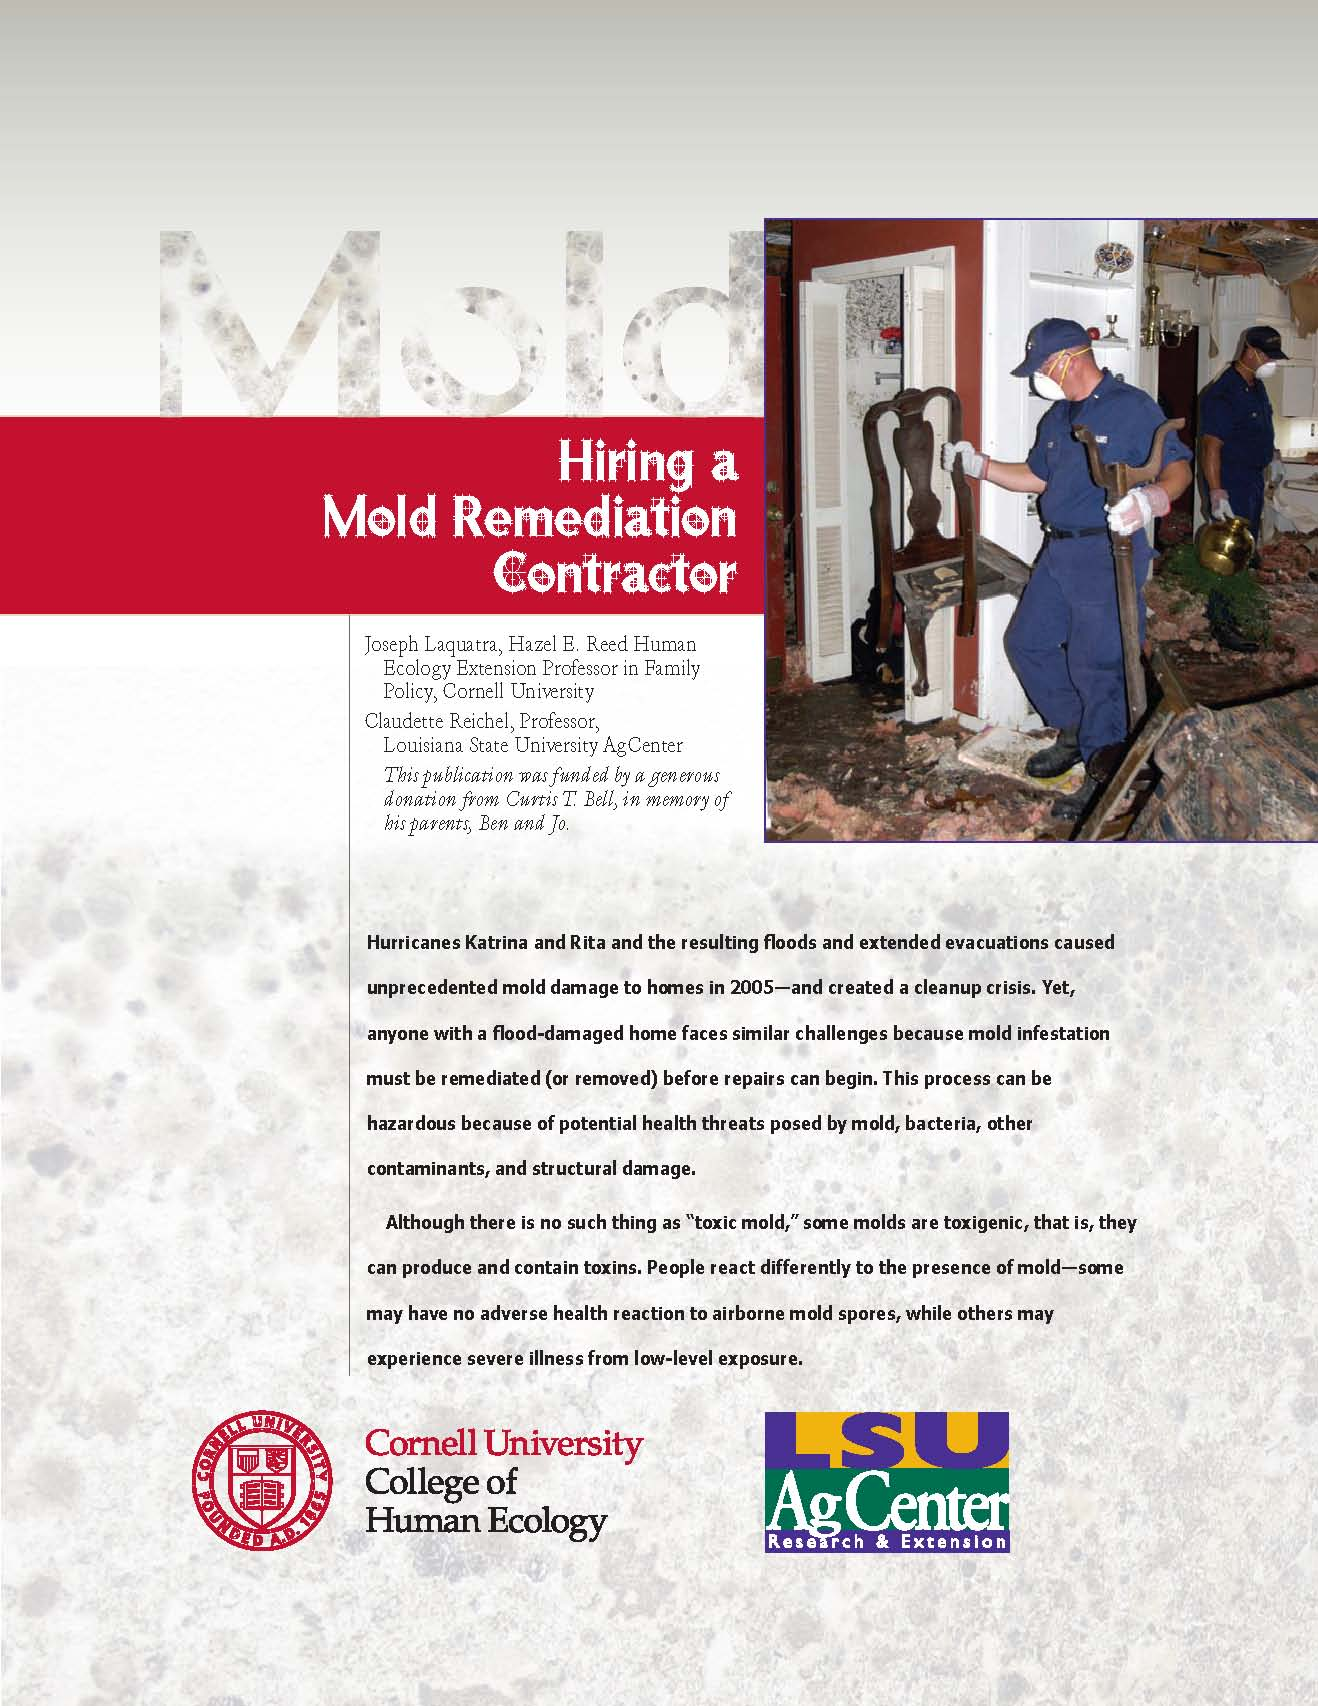 Hiring a Mold Remediation Contractor